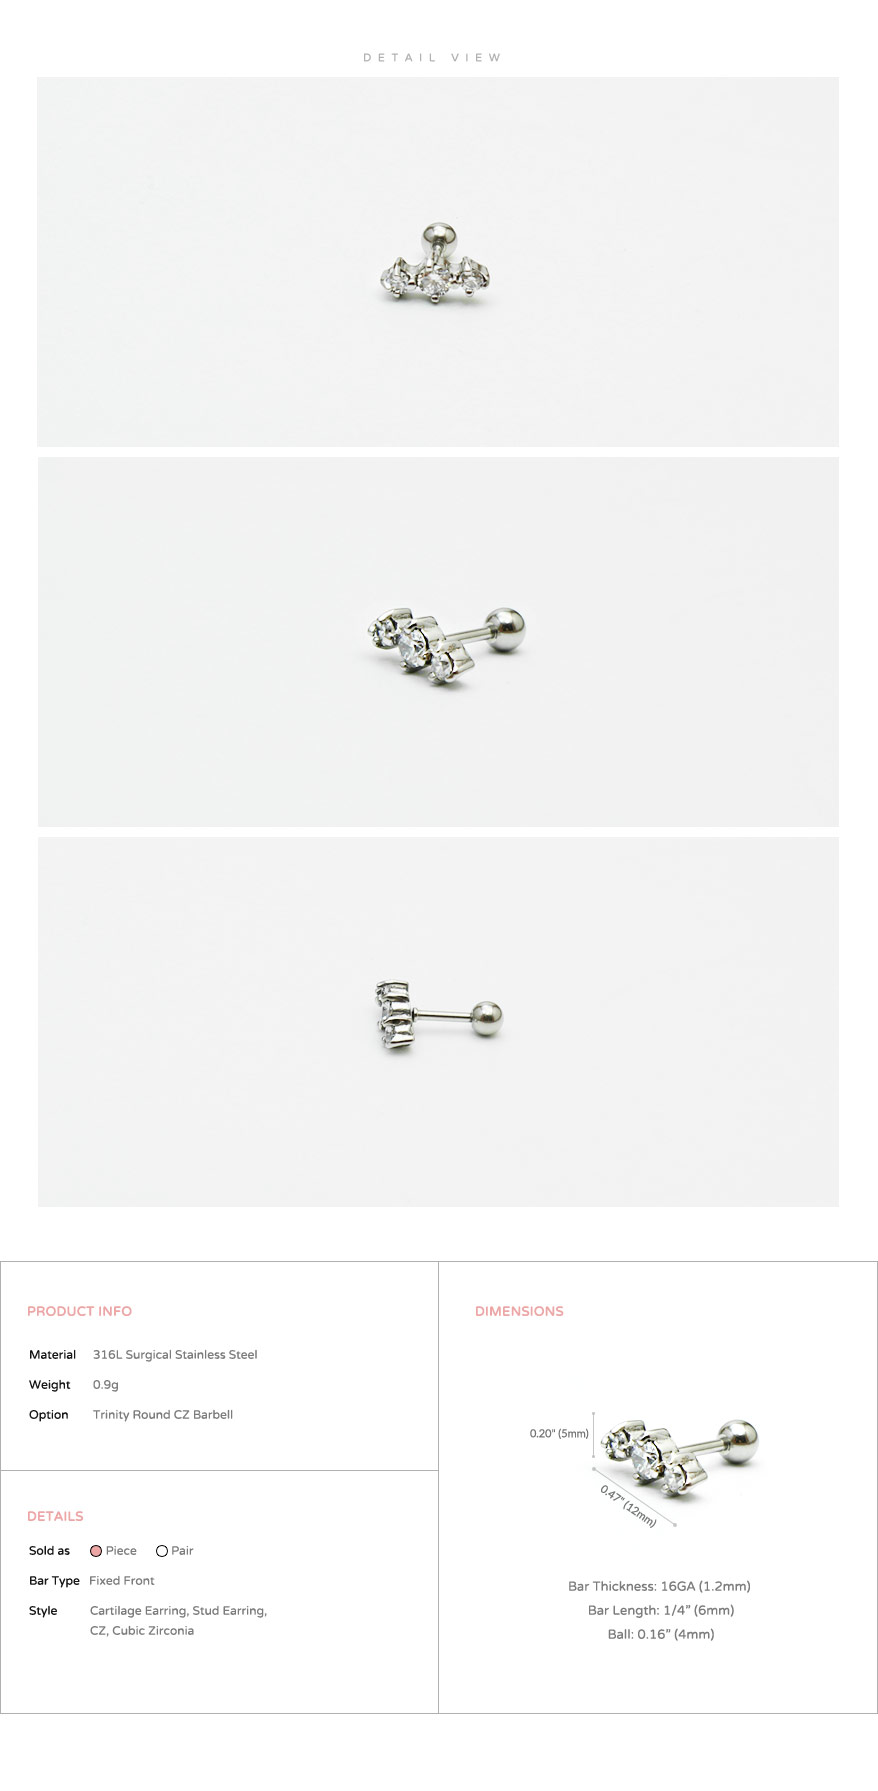 ear_studs_piercing_Cartilage_16g_316l_Stainless_Steel_earring_korean_asian_style_barbell_gem_cubic_zirconia_cz_triple_4